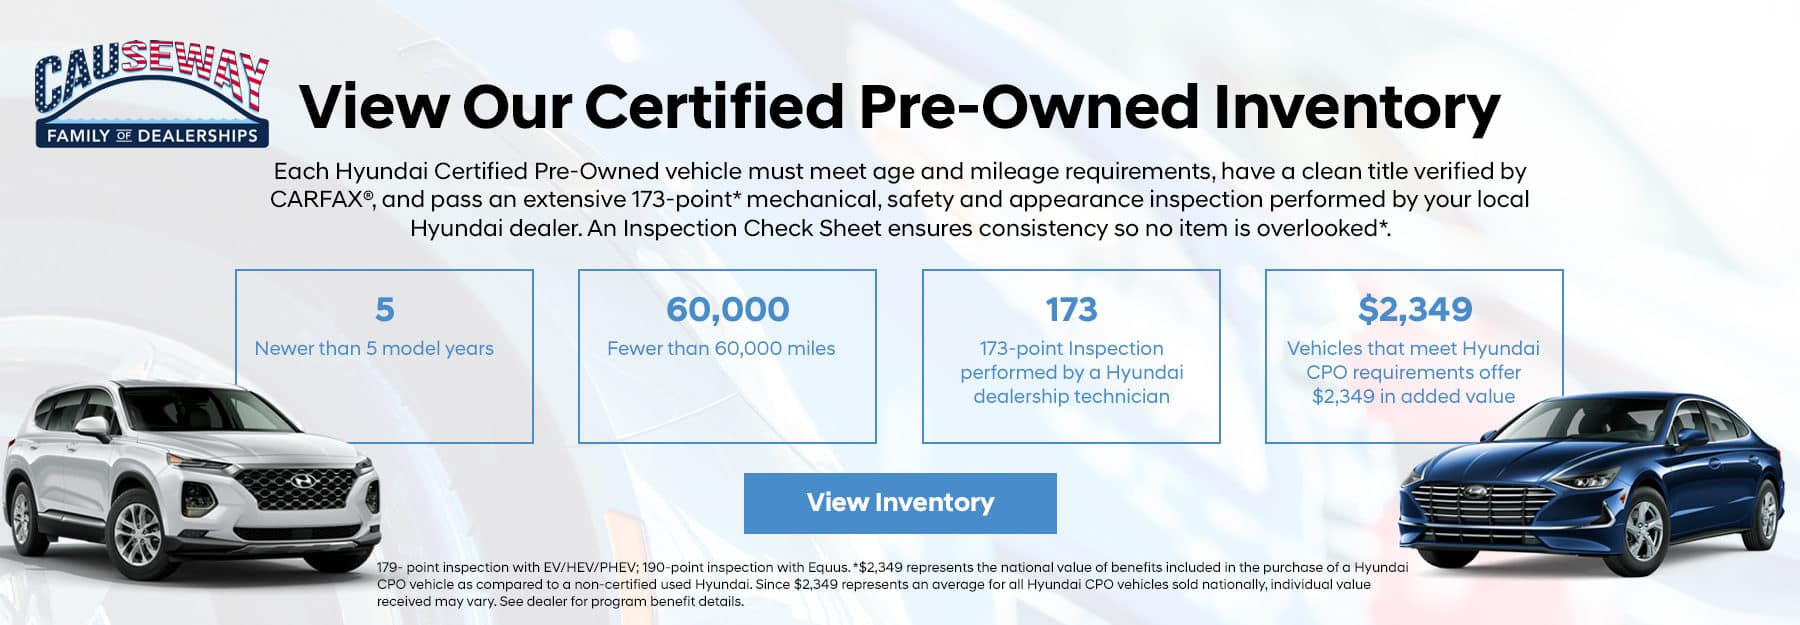 Each Hyundai Certified Pre-Owned vehicle must meet age and mileage requirements, have a clean title verified by CARFAX®, and pass an extensive 173-point* mechanical, safety and appearance inspection performed by your local Hyundai dealer. An Inspection Check Sheet ensures consistency so no item is overlooked*. Bullets: 5 - Newer than 5 model years 60,000 - Fewer than 60,000 miles 173 - 173-point Inspection performed by a Hyundai dealership technician $2,349 - Vehicles that meet Hyundai CPO requirements offer $2,349 in added value